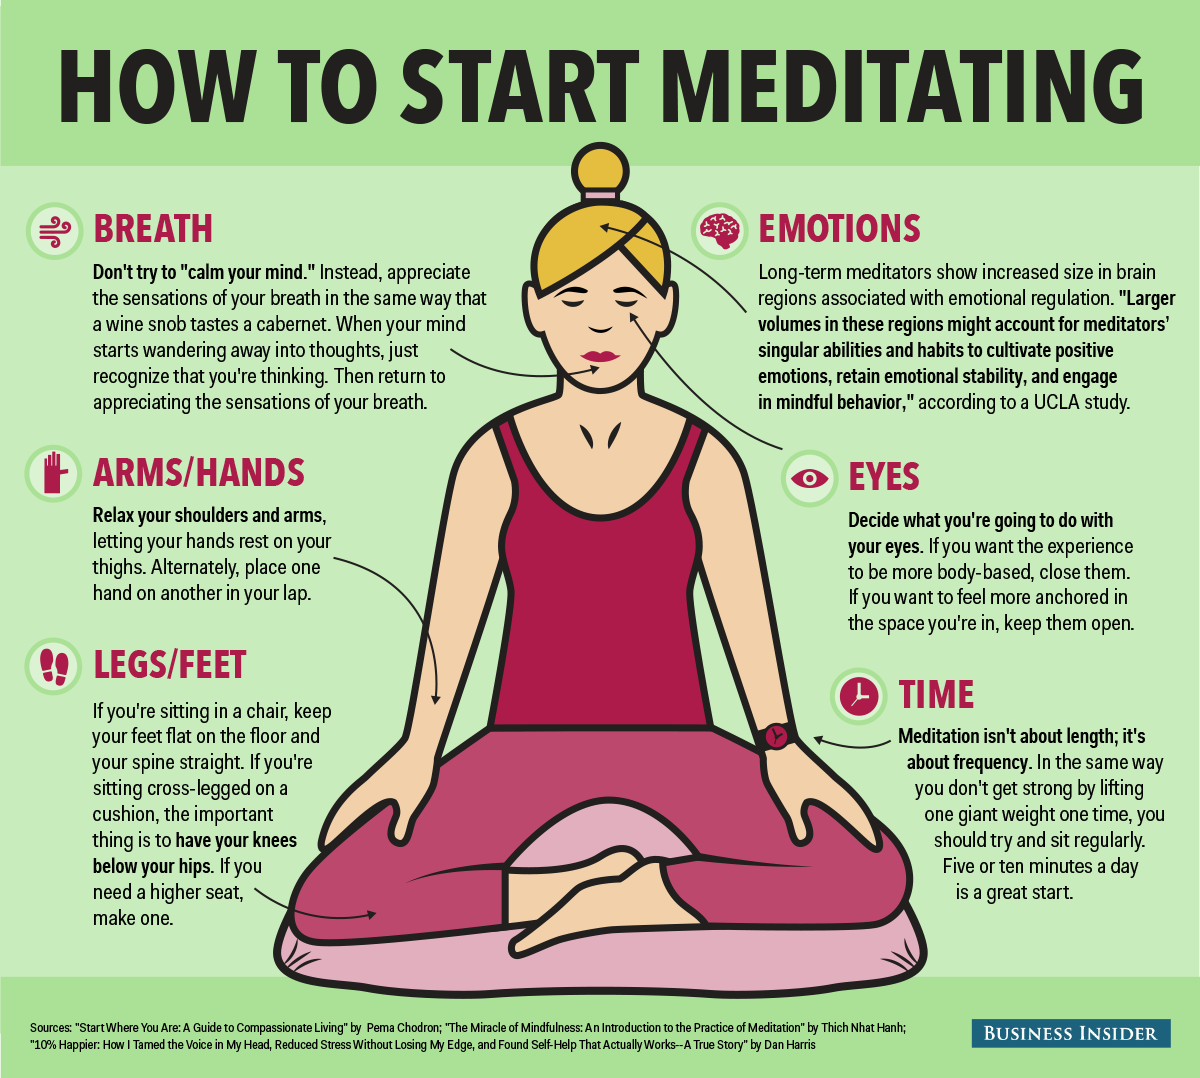 How To Start Meditating Pictures, Photos, and Images for